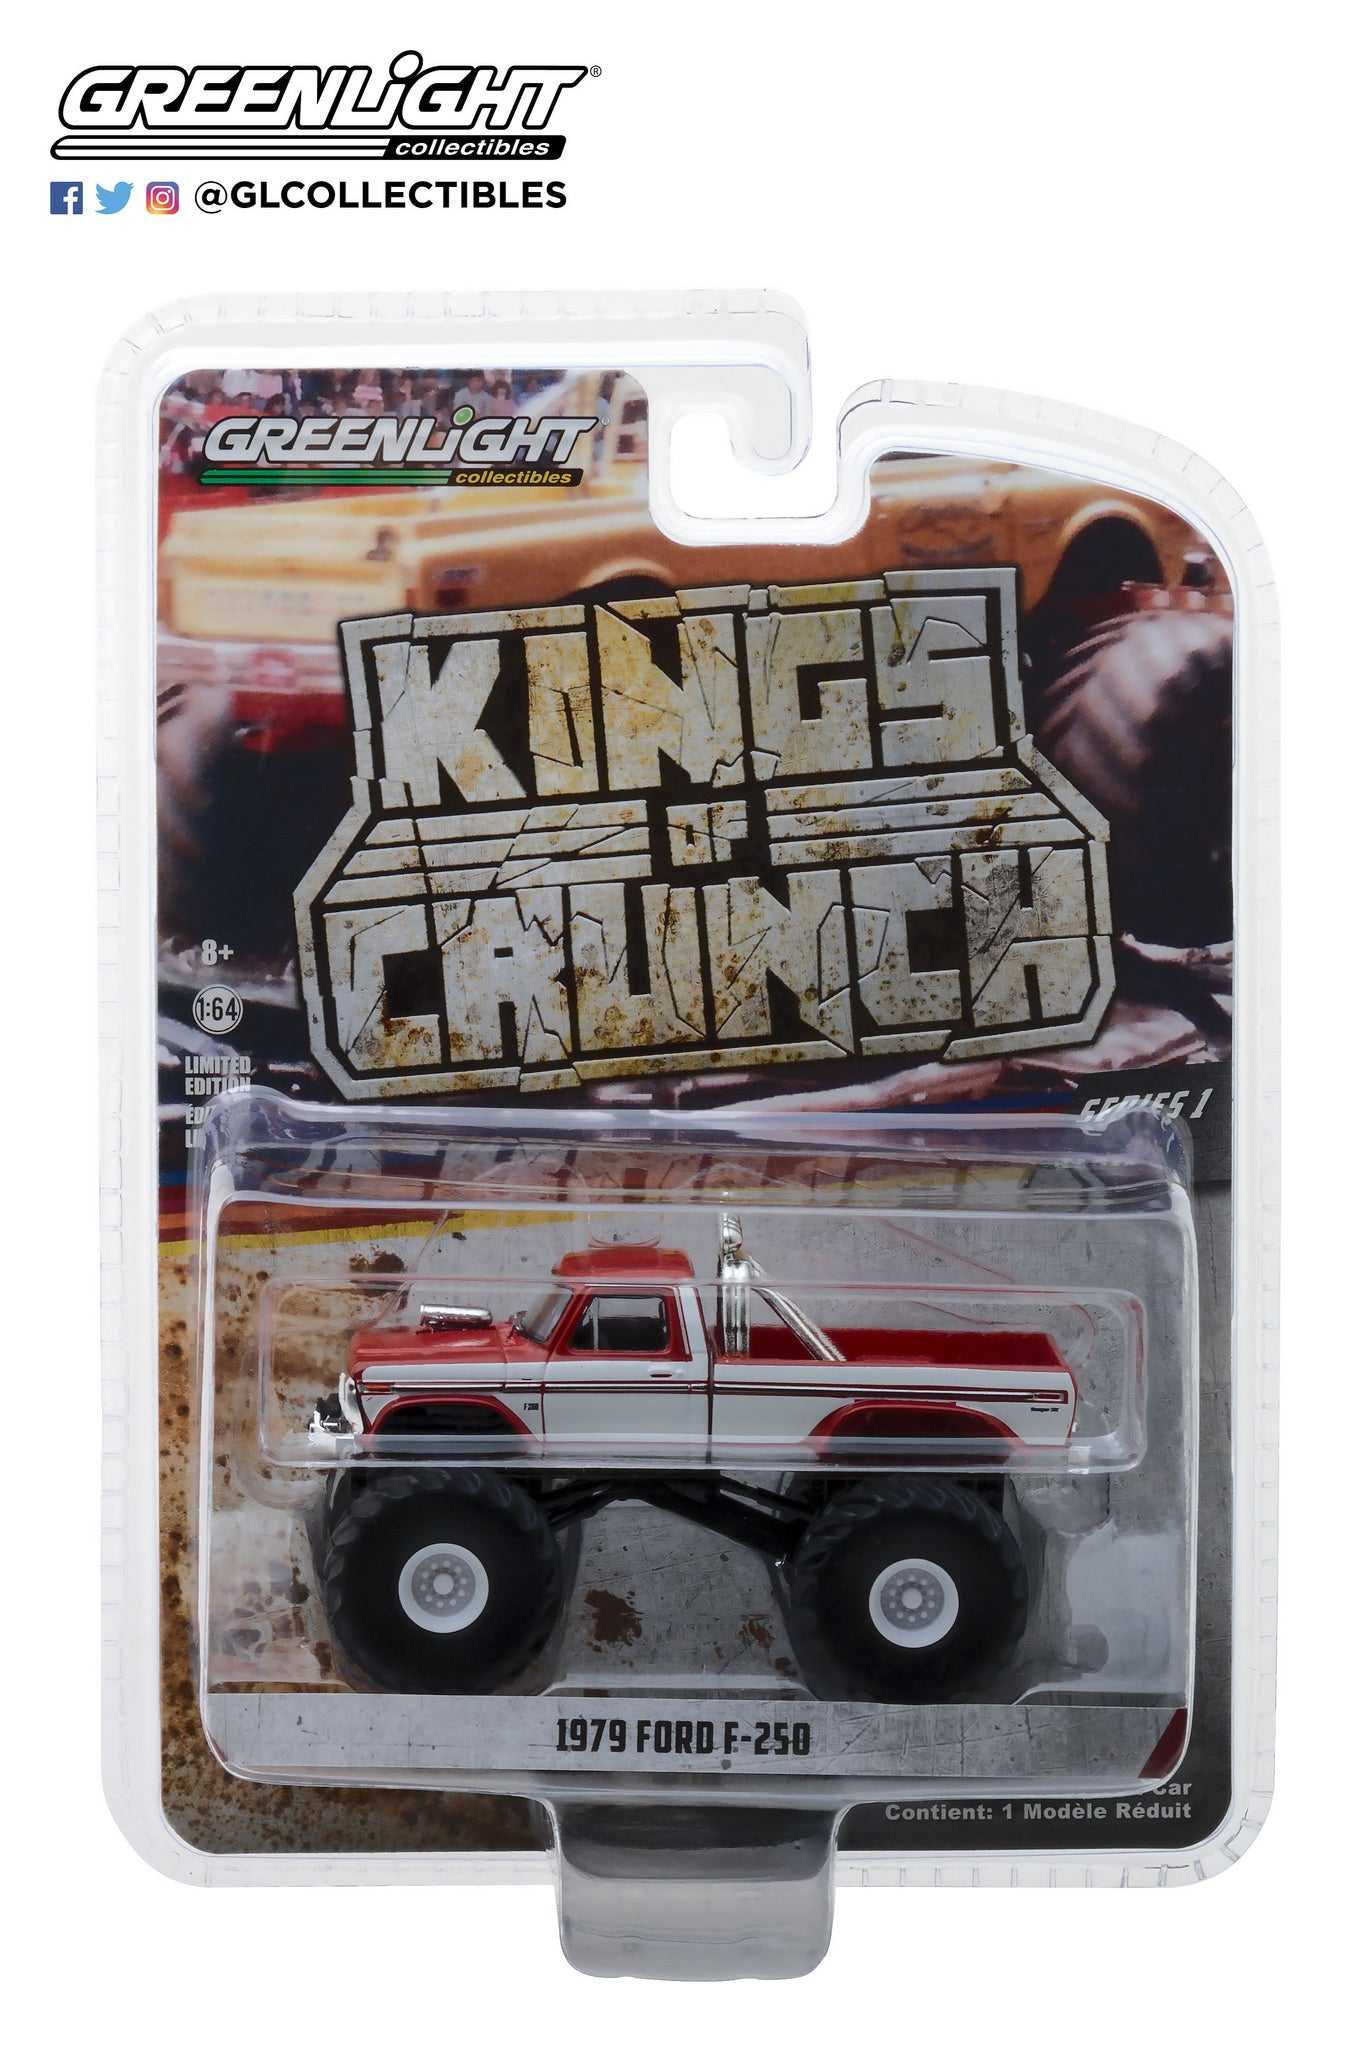 GreenLight 1/64 Kings of Crunch Series 1 - 1979 Ford F-250 Monster Truck - Maroon with White Stripes 49010-E